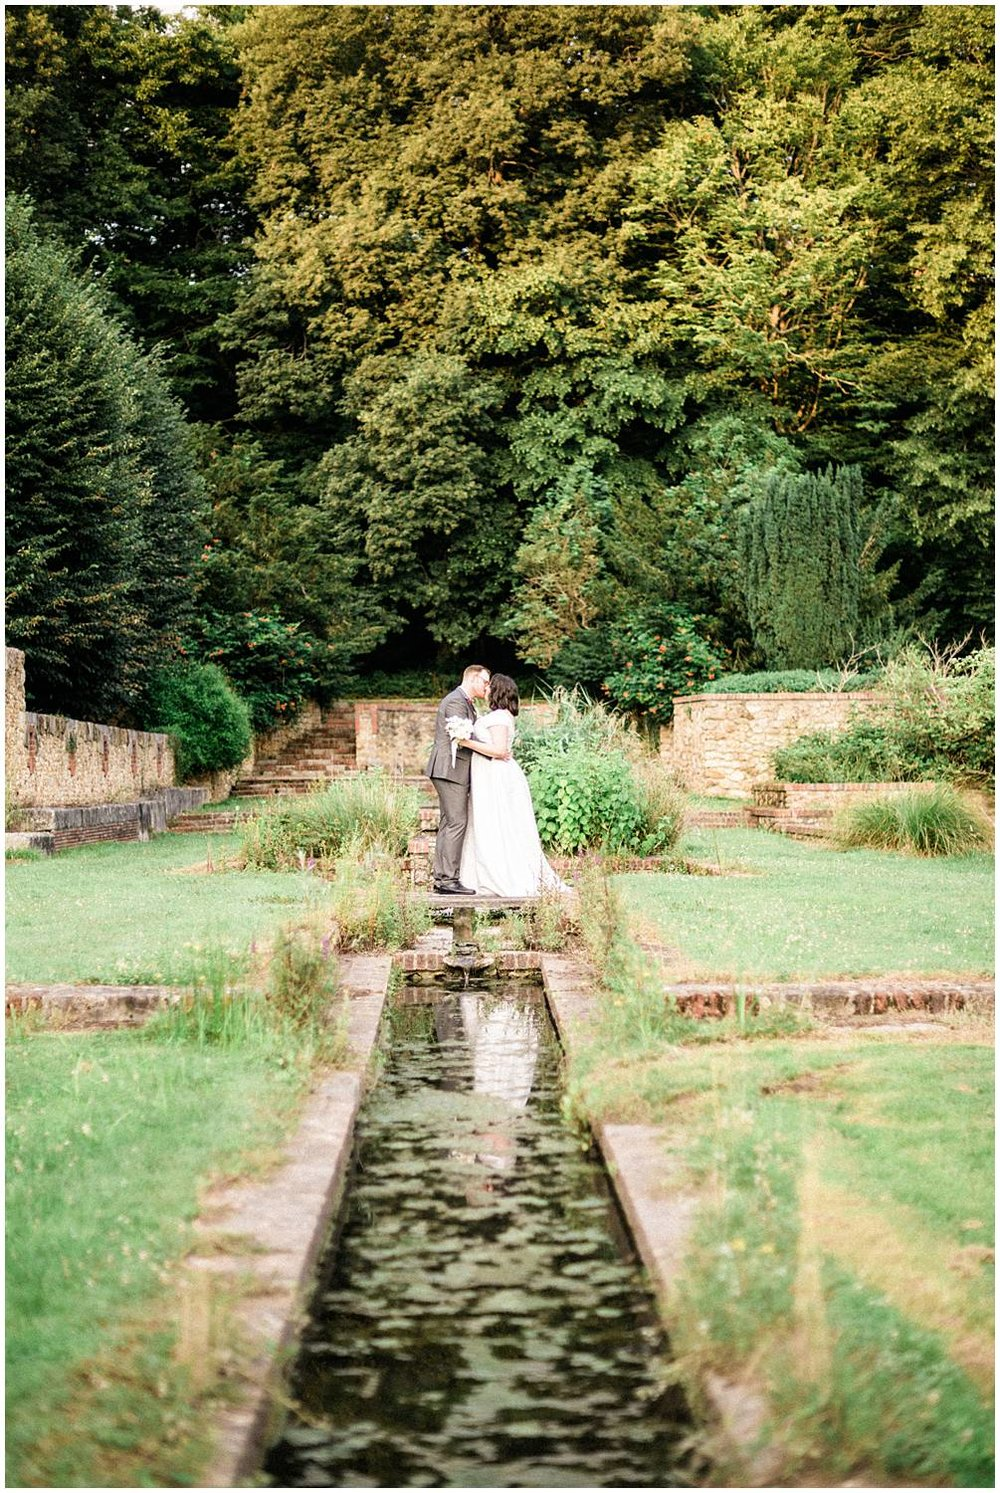 Couple session at chateau de mauvieres